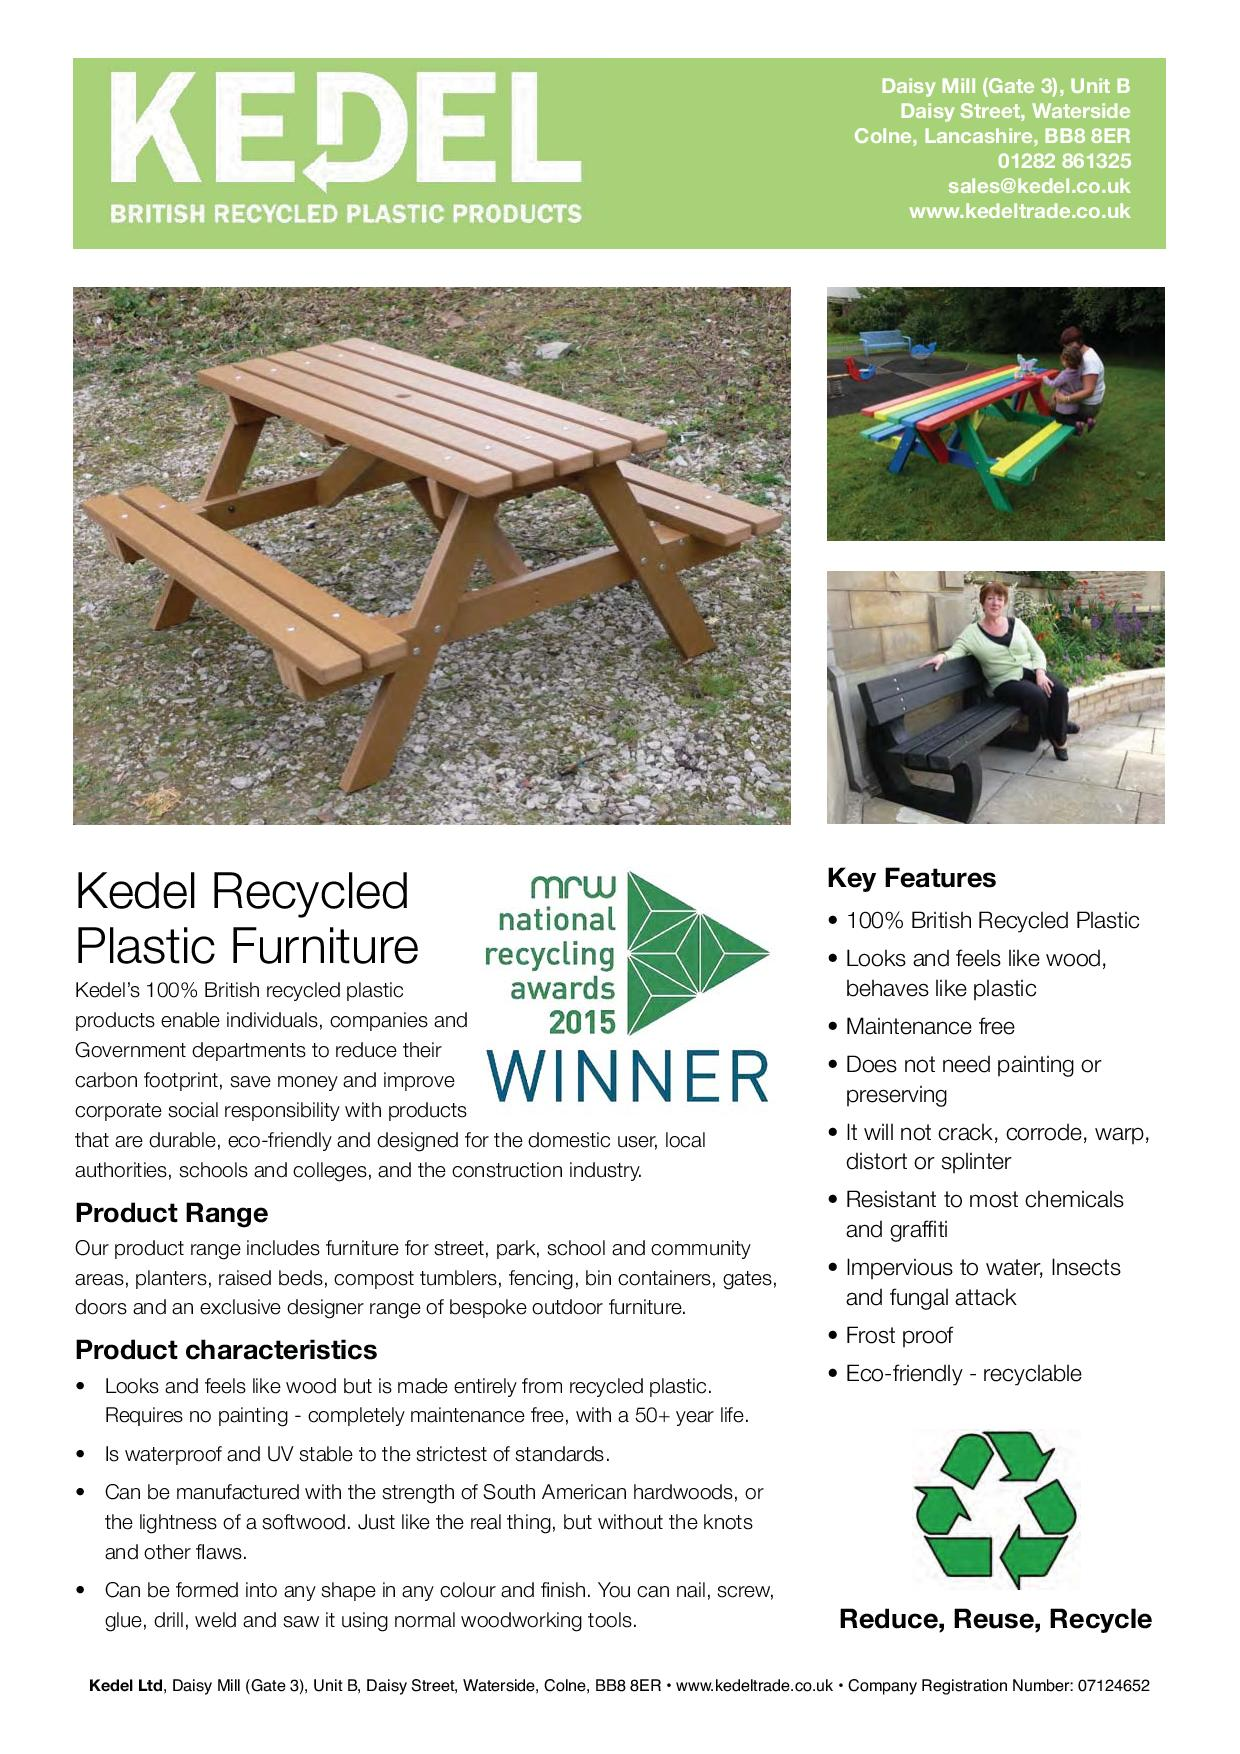 1 page recycled plastic furniture key features leaflet